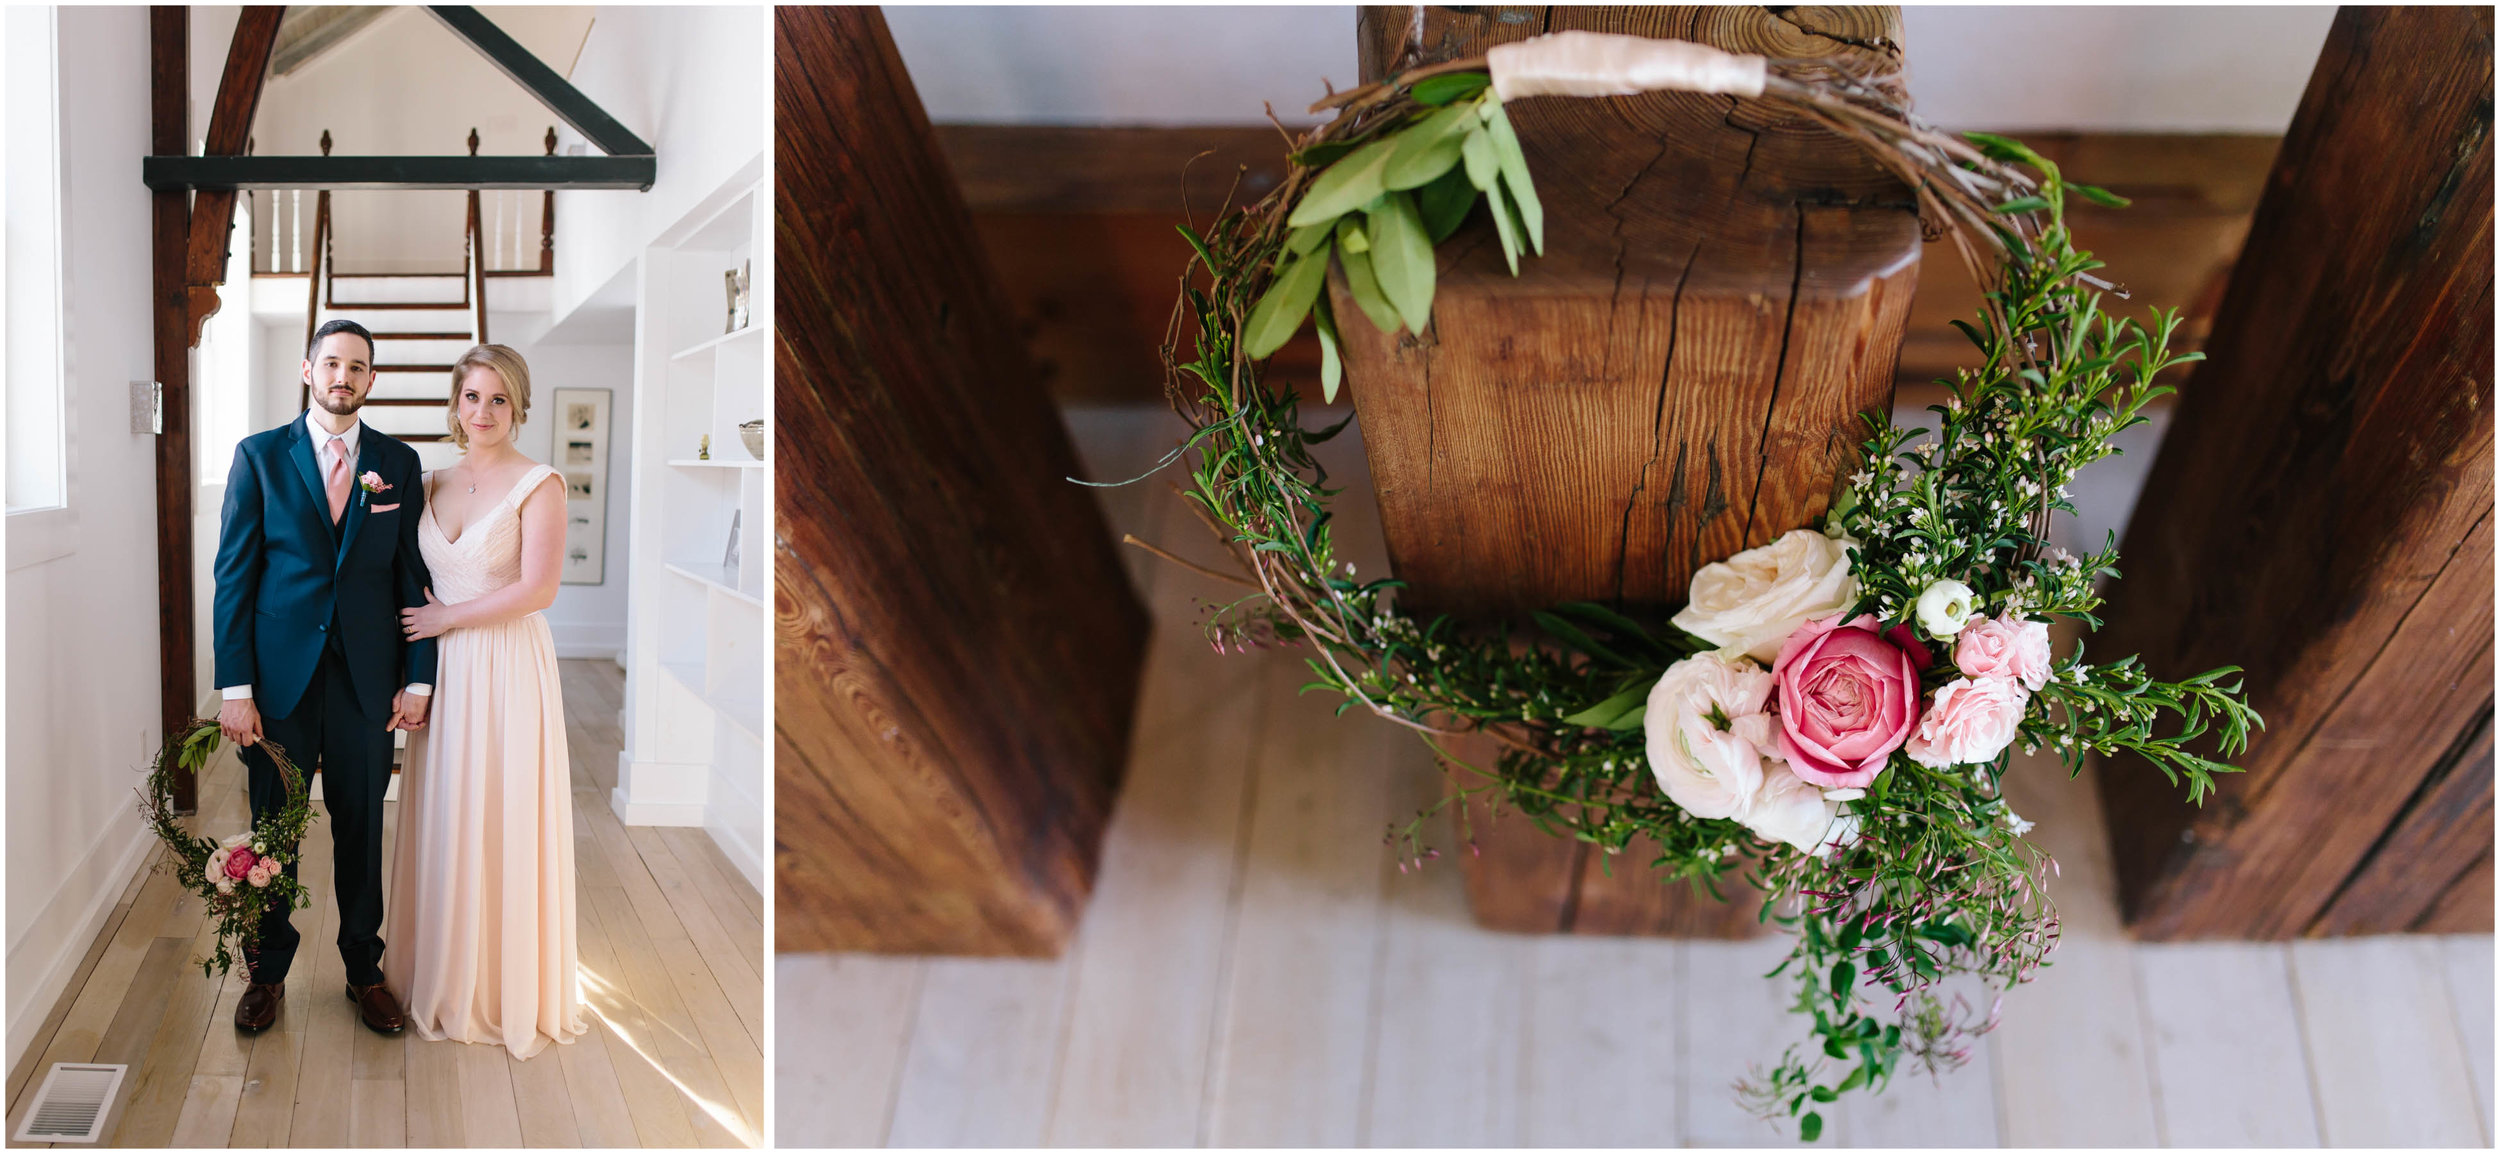 Intimate and romantic styled wedding photography in Lee, Massachusetts in the Berkshires - maid/matron of honor and best man, flowers